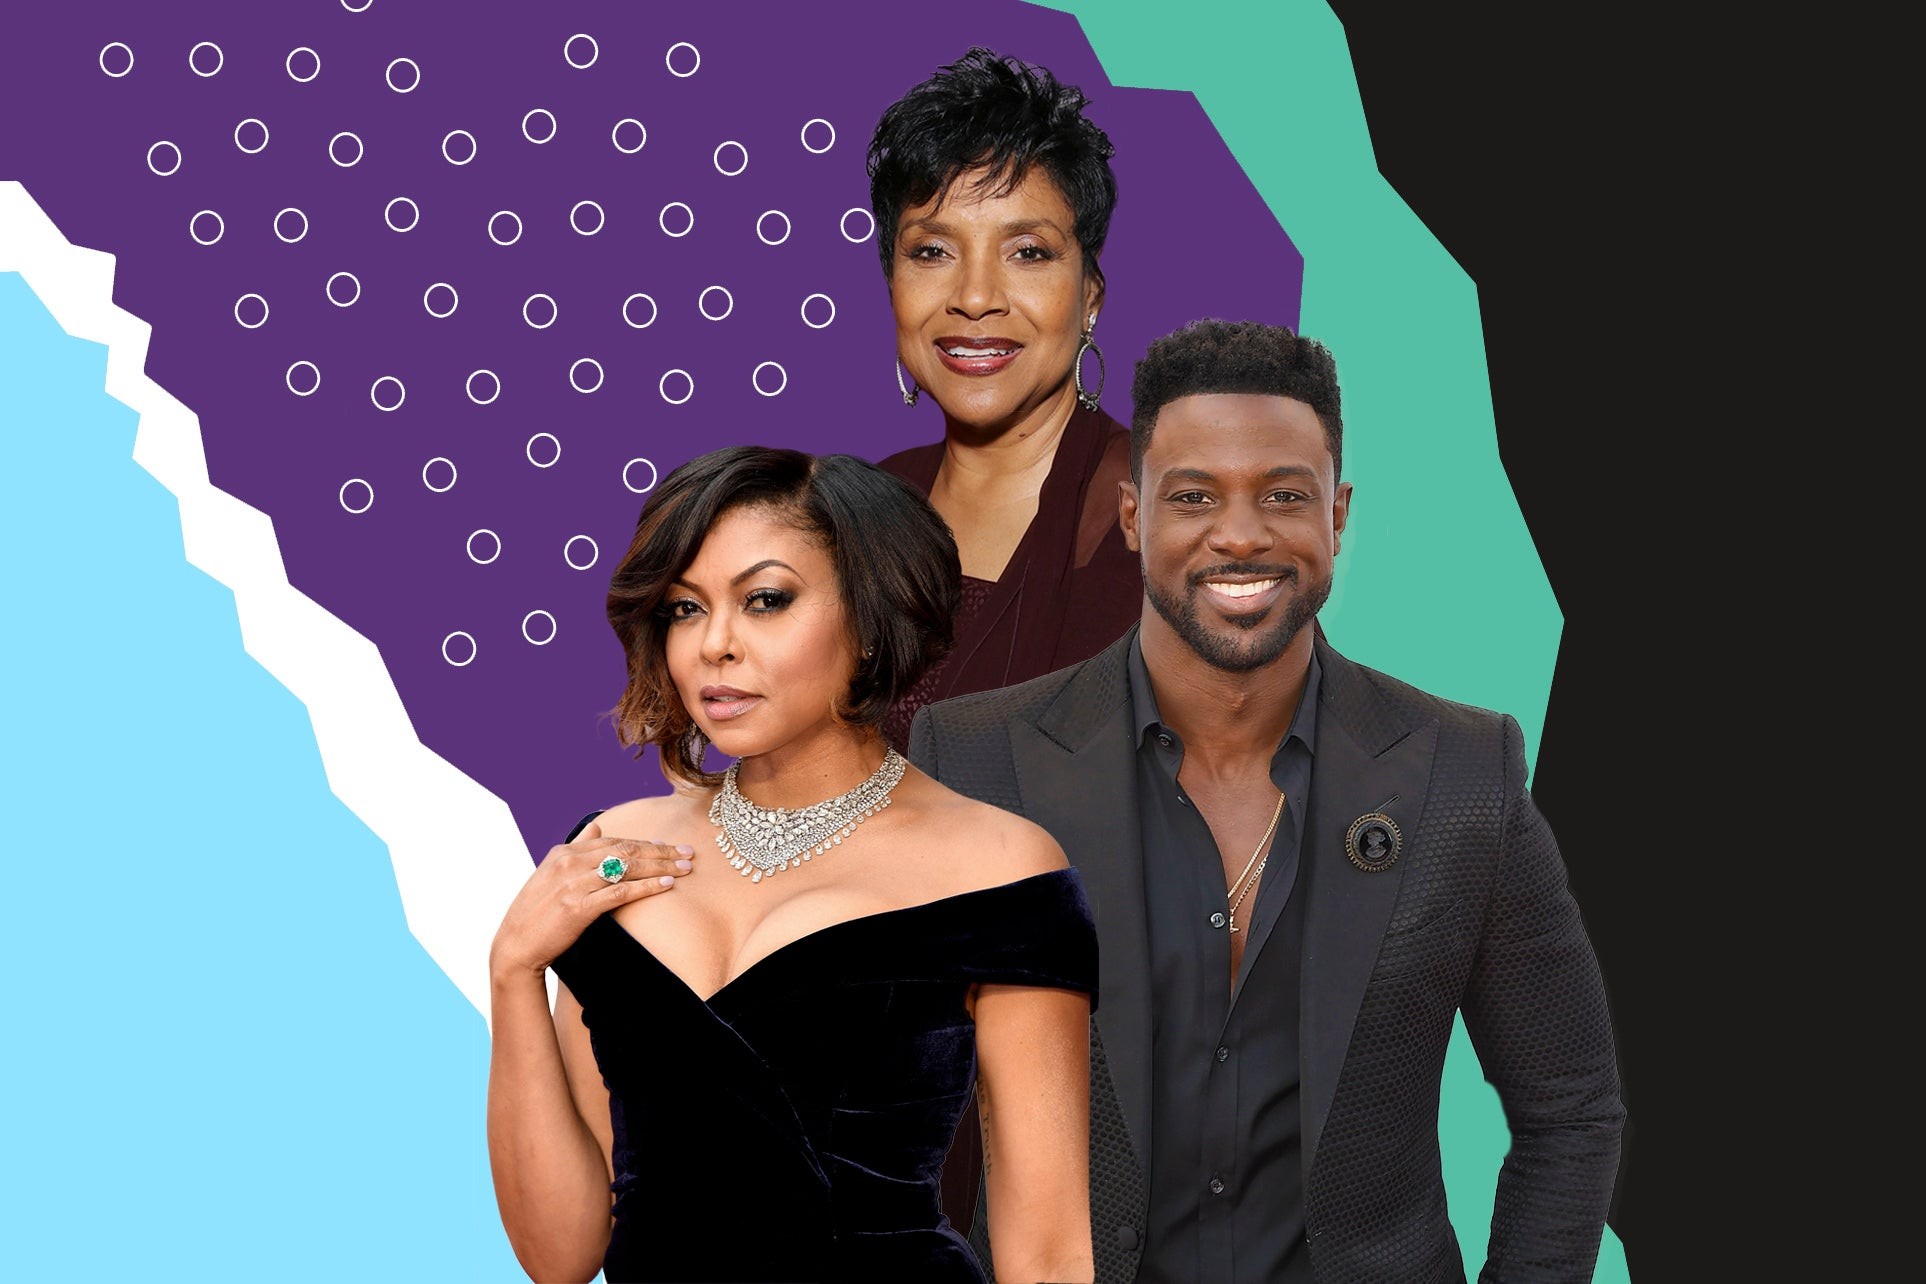 HBCU Love: 16 Celebrities Who Attended Howard University